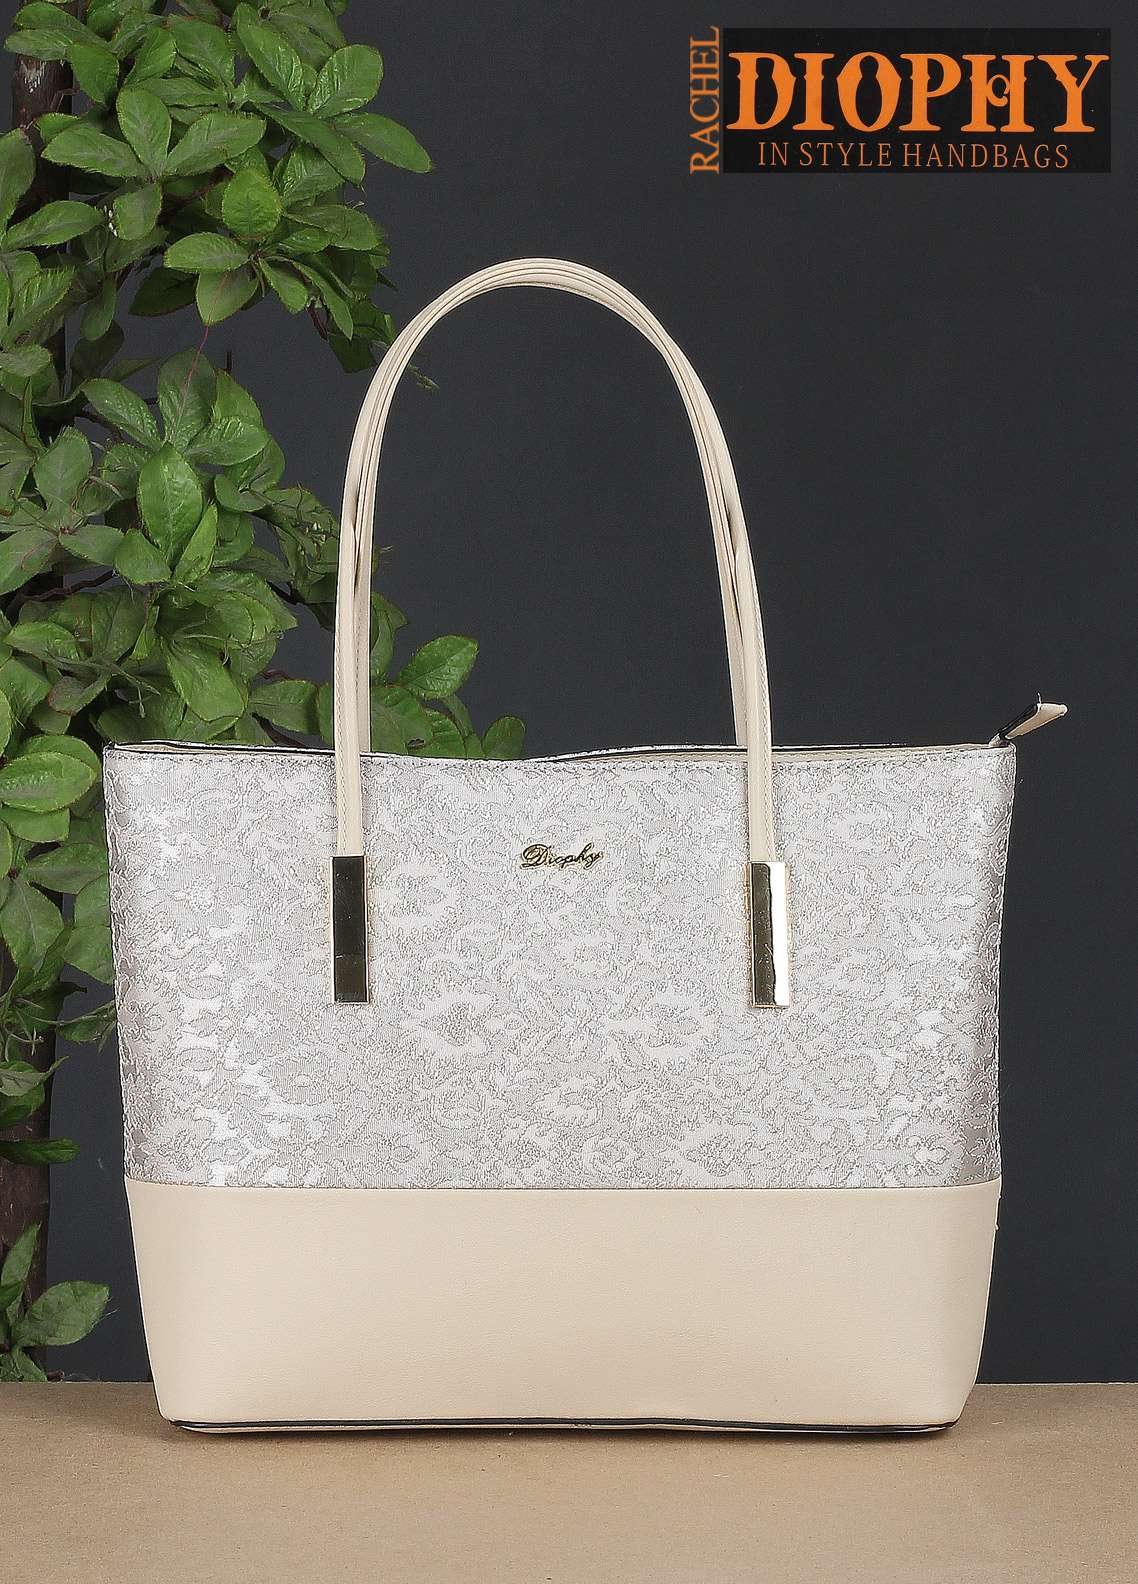 Rachel Diophy PU Leather Tote Handbags for Women - Beige with Embroidered Textured